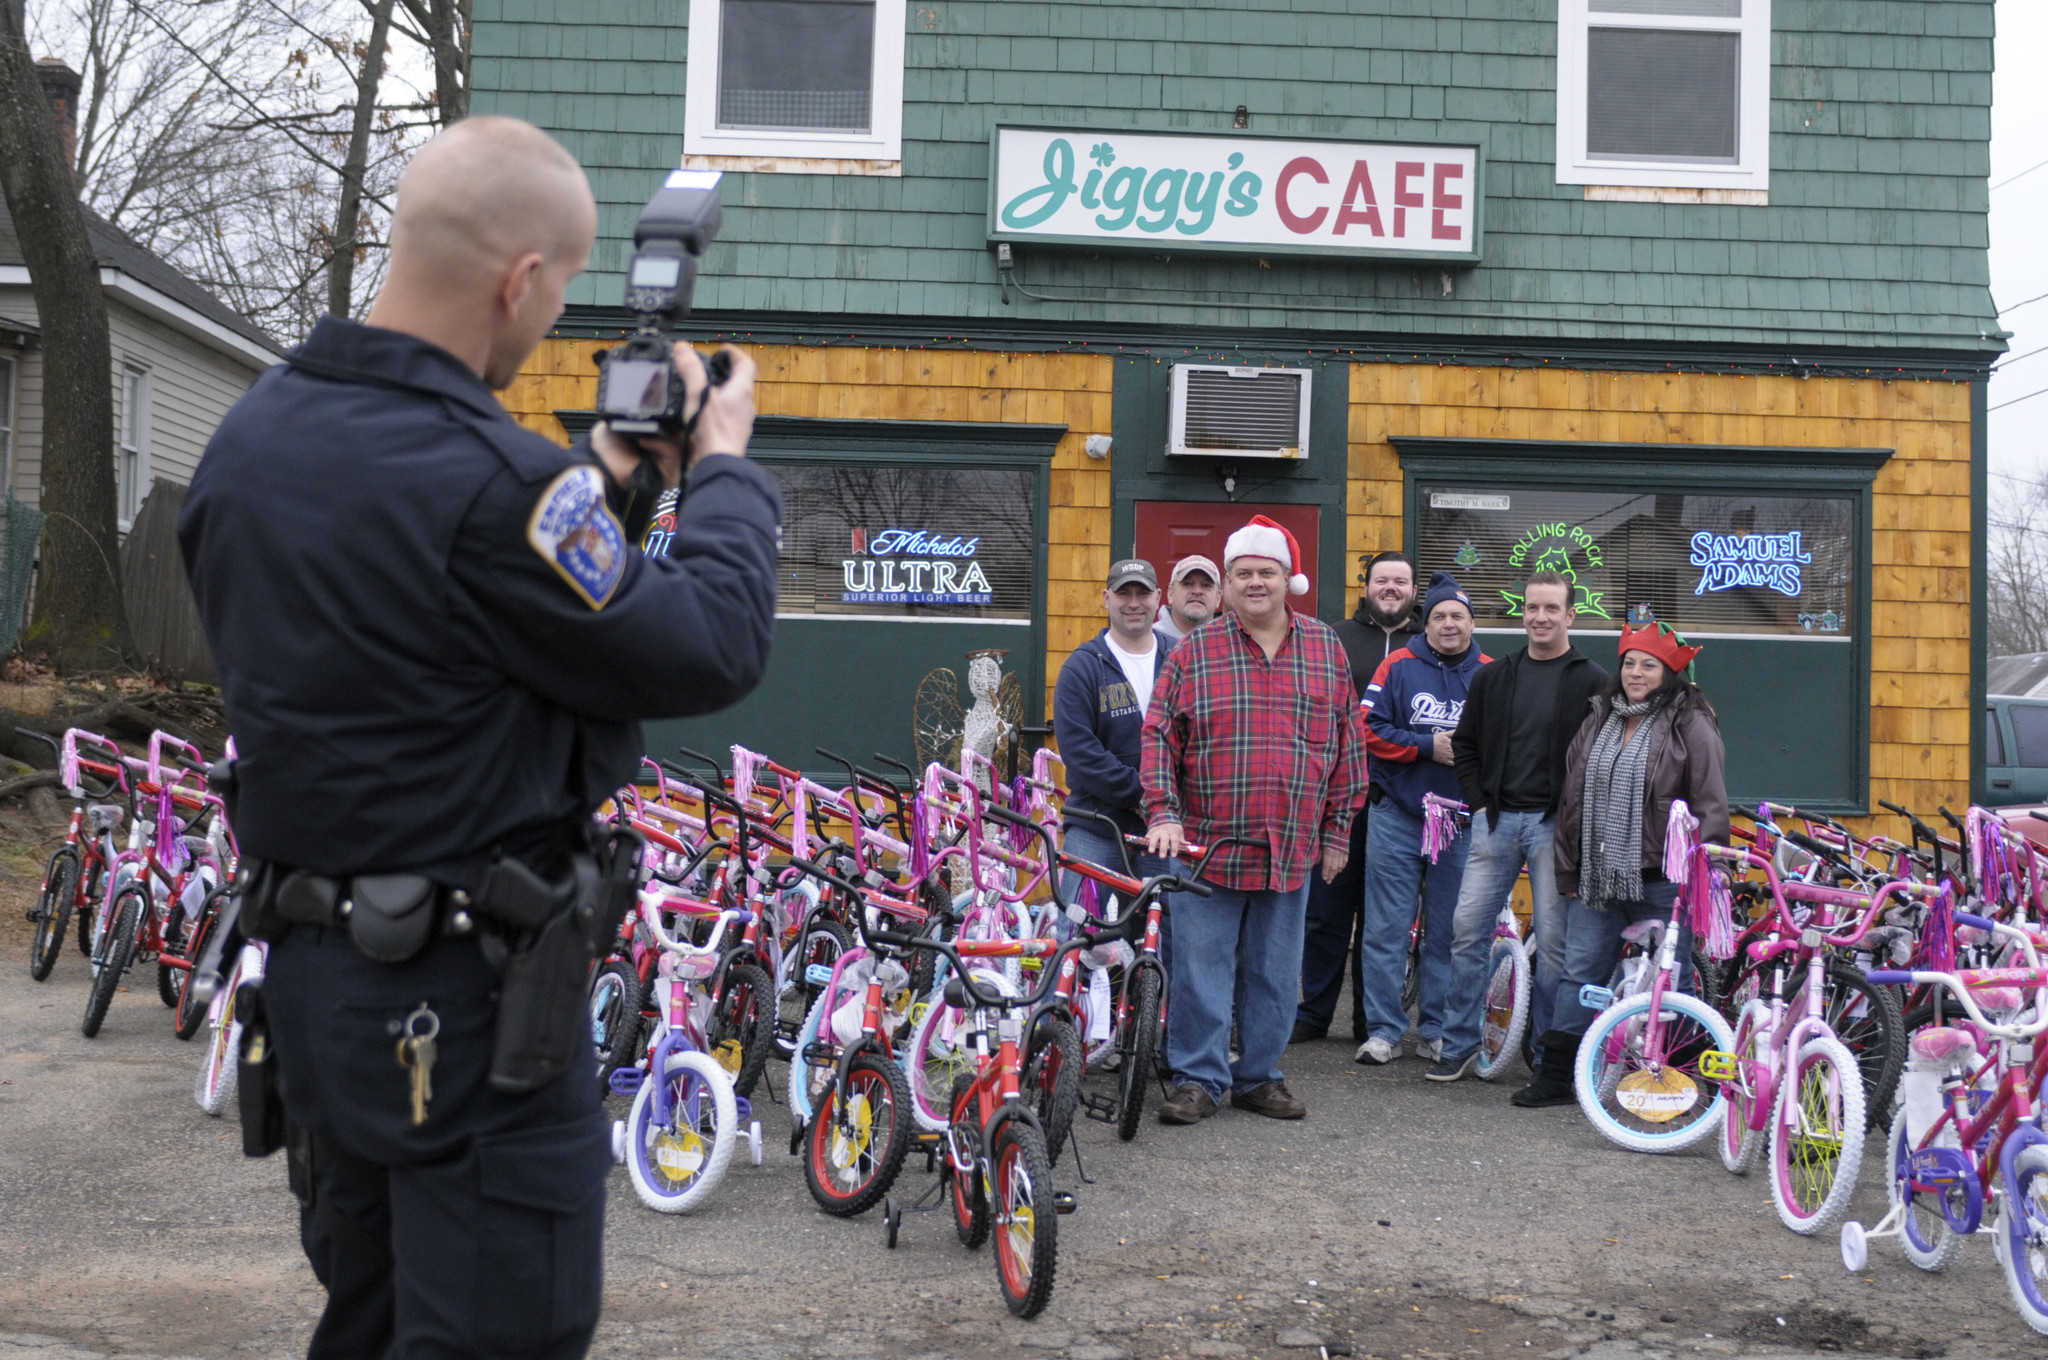 Toys For Joy : Local bar donates bikes in toys to annual